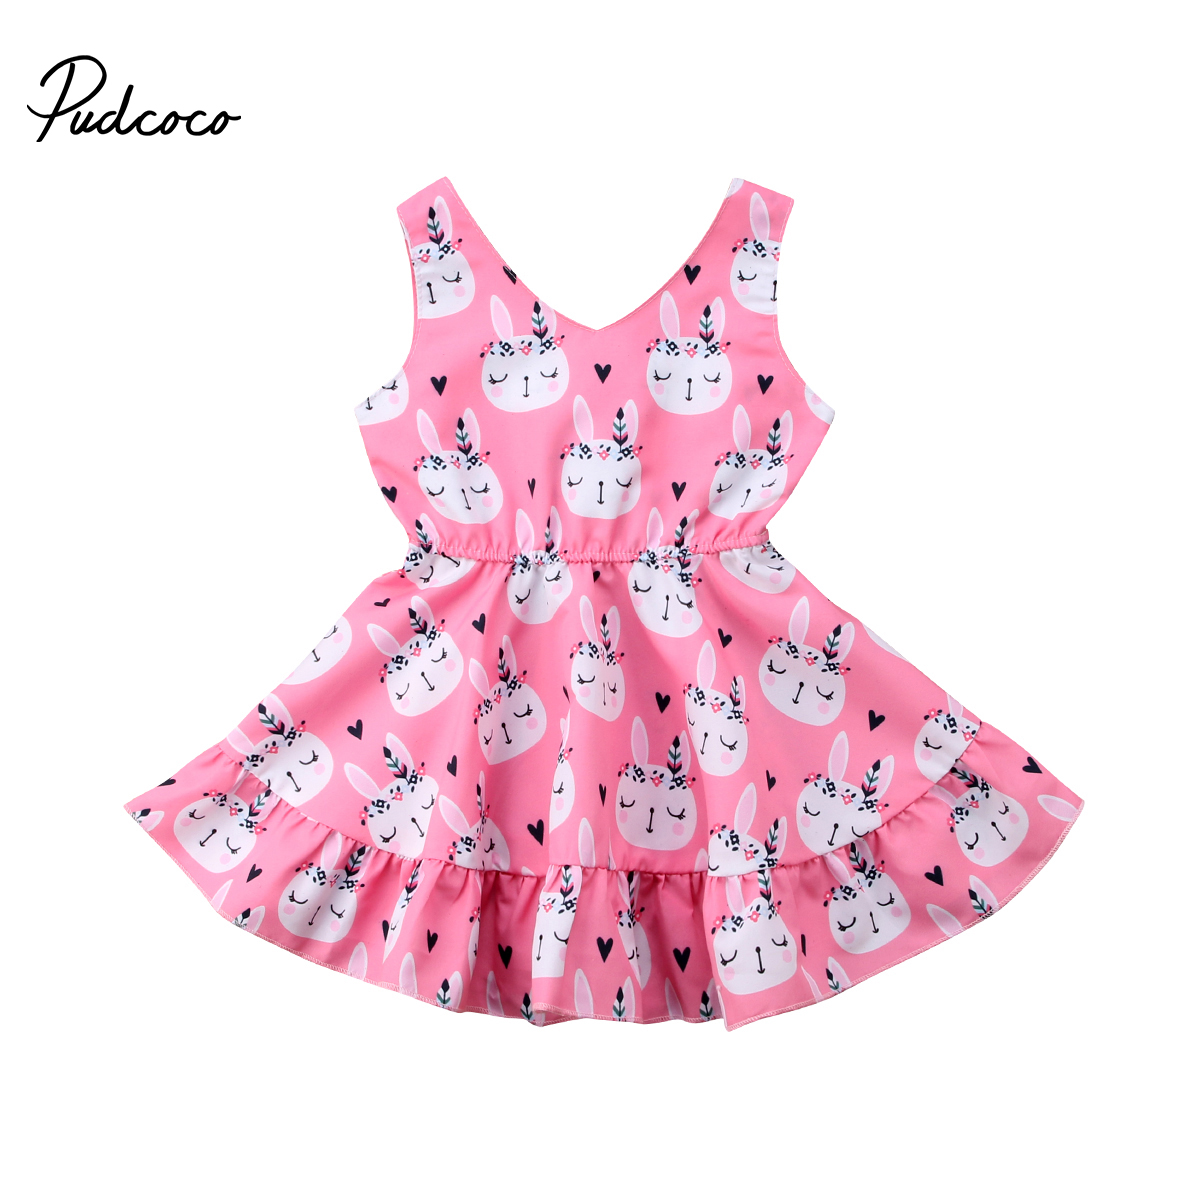 Pudcoco Kids Toddler Baby Girl Clothes Princess Sleeveless Rabbit Ball Gown Dress Outfits 1-6 Years  Easter Costume